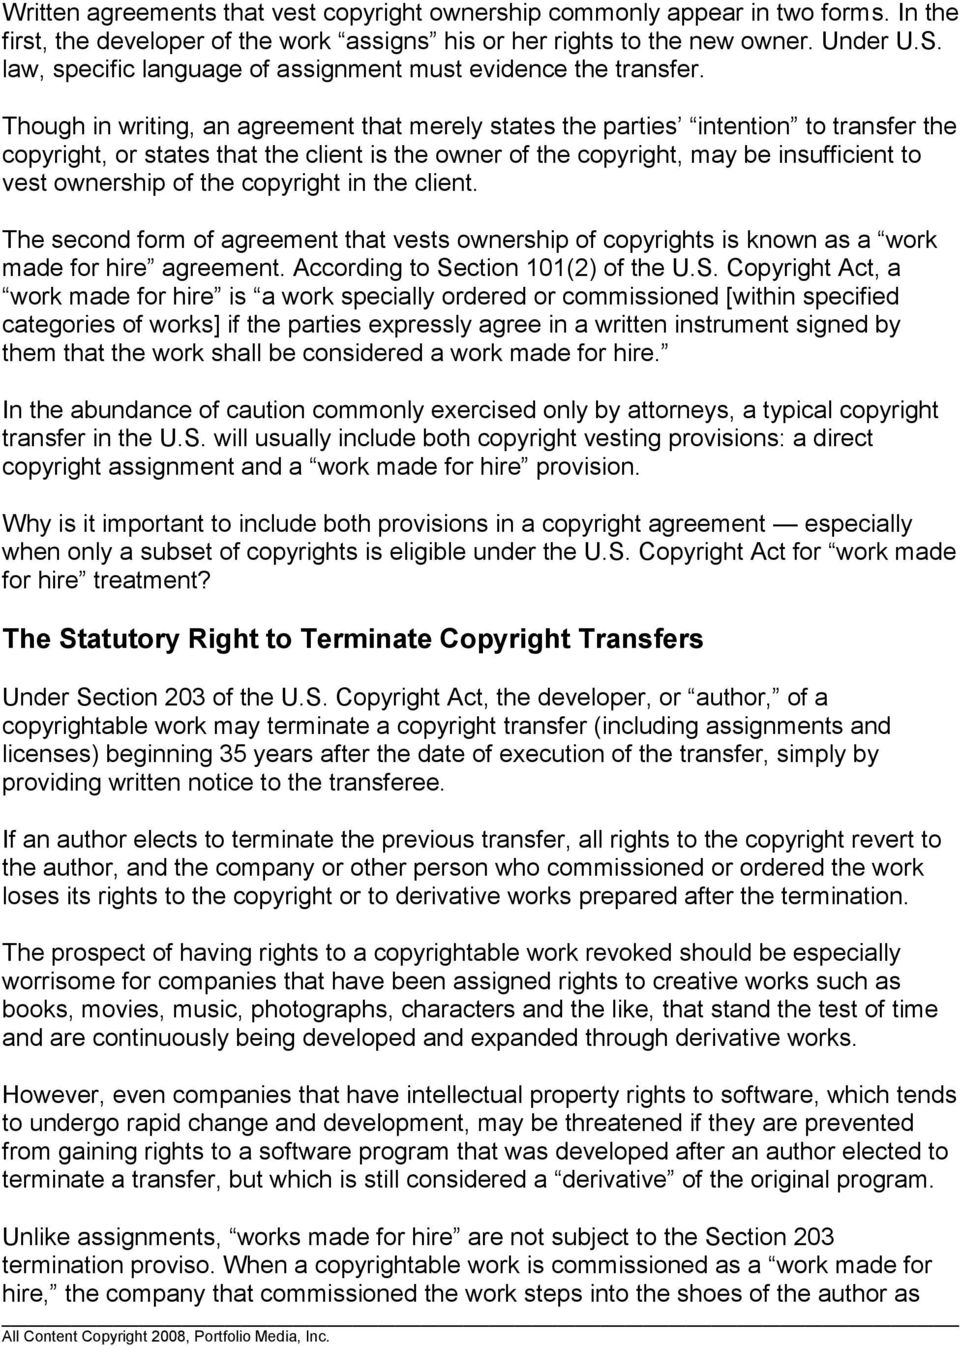 Though in writing, an agreement that merely states the parties intention to transfer the copyright, or states that the client is the owner of the copyright, may be insufficient to vest ownership of